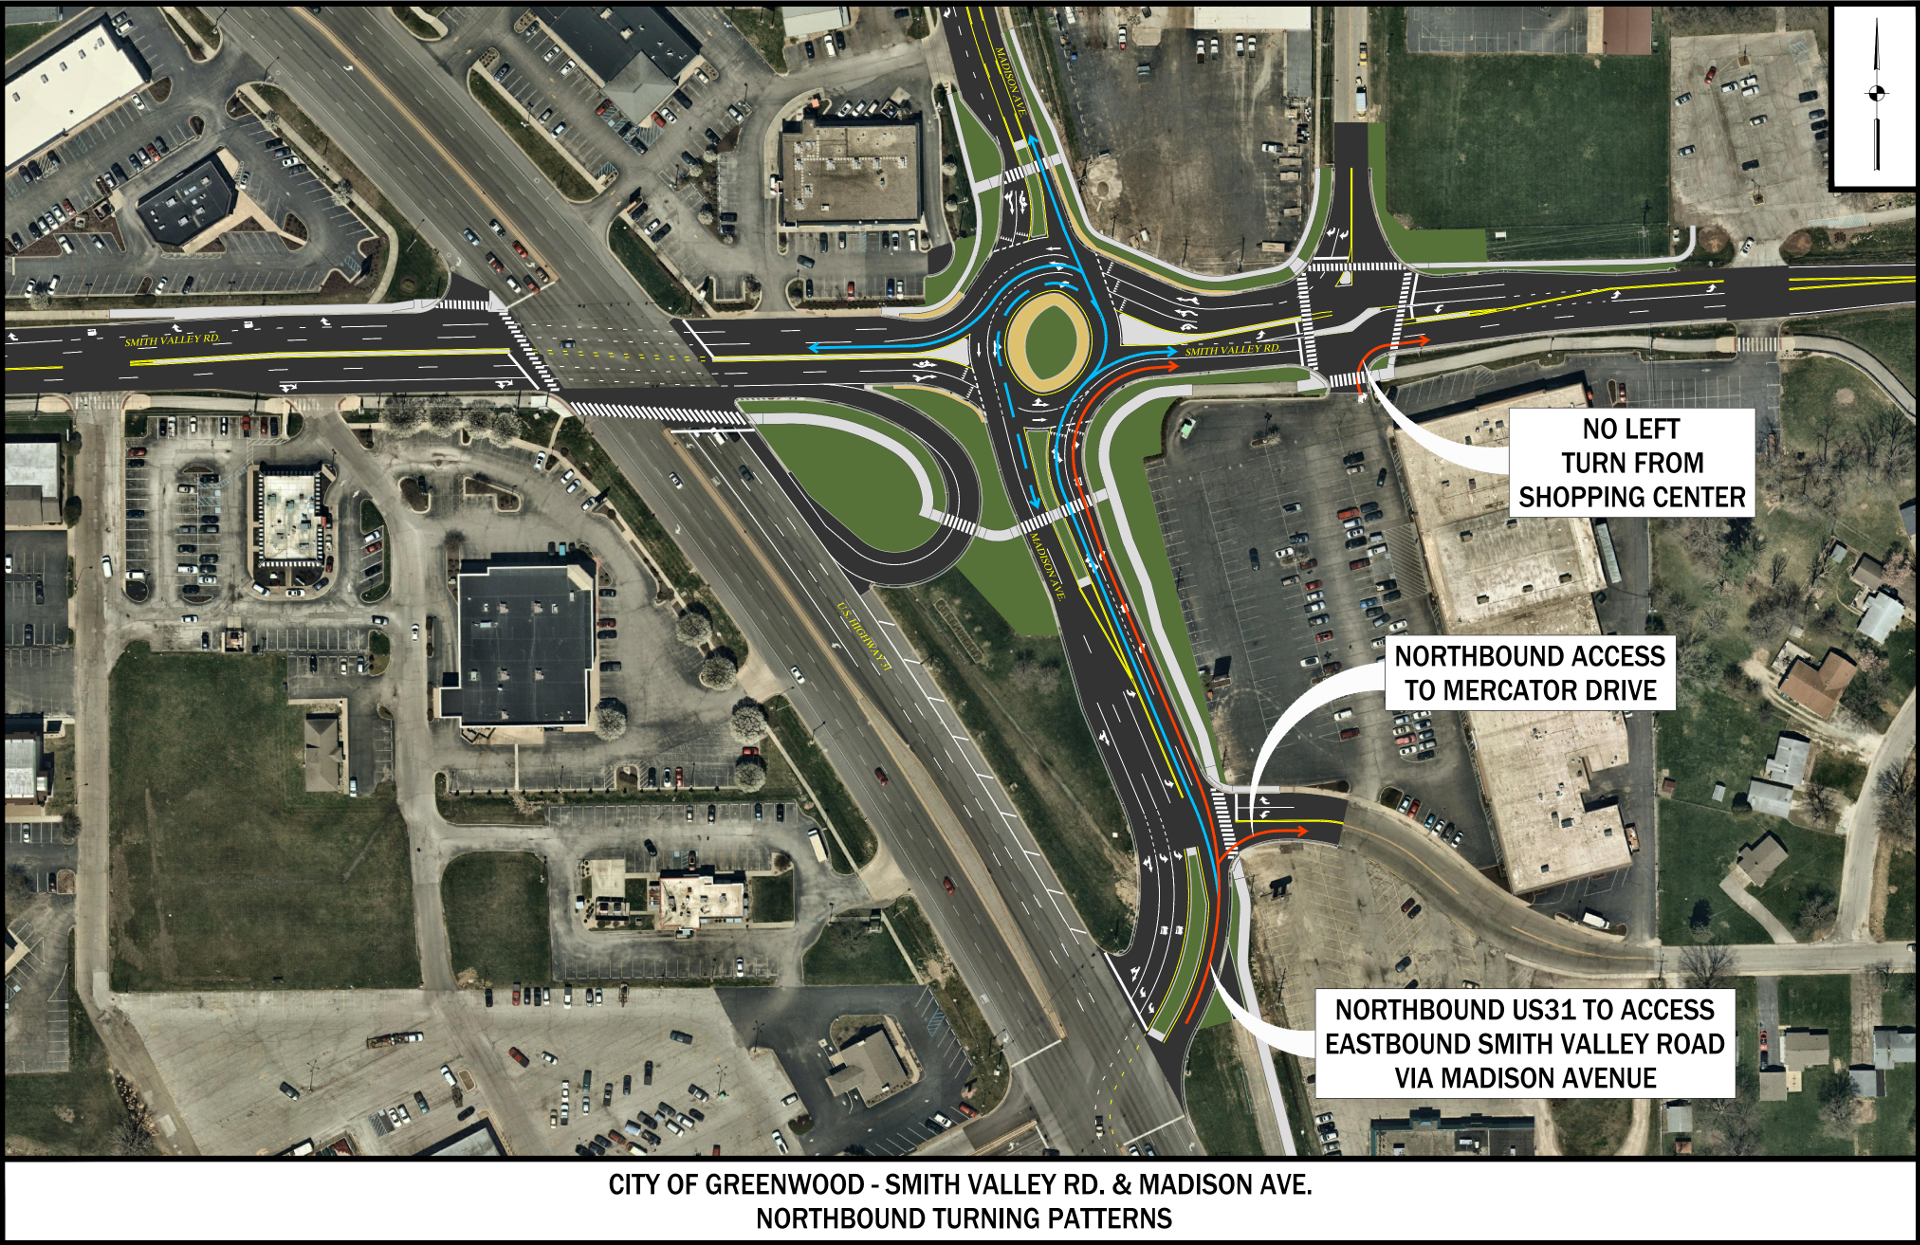 Madison/Smith Valley Roundabout - Northbound Traffic